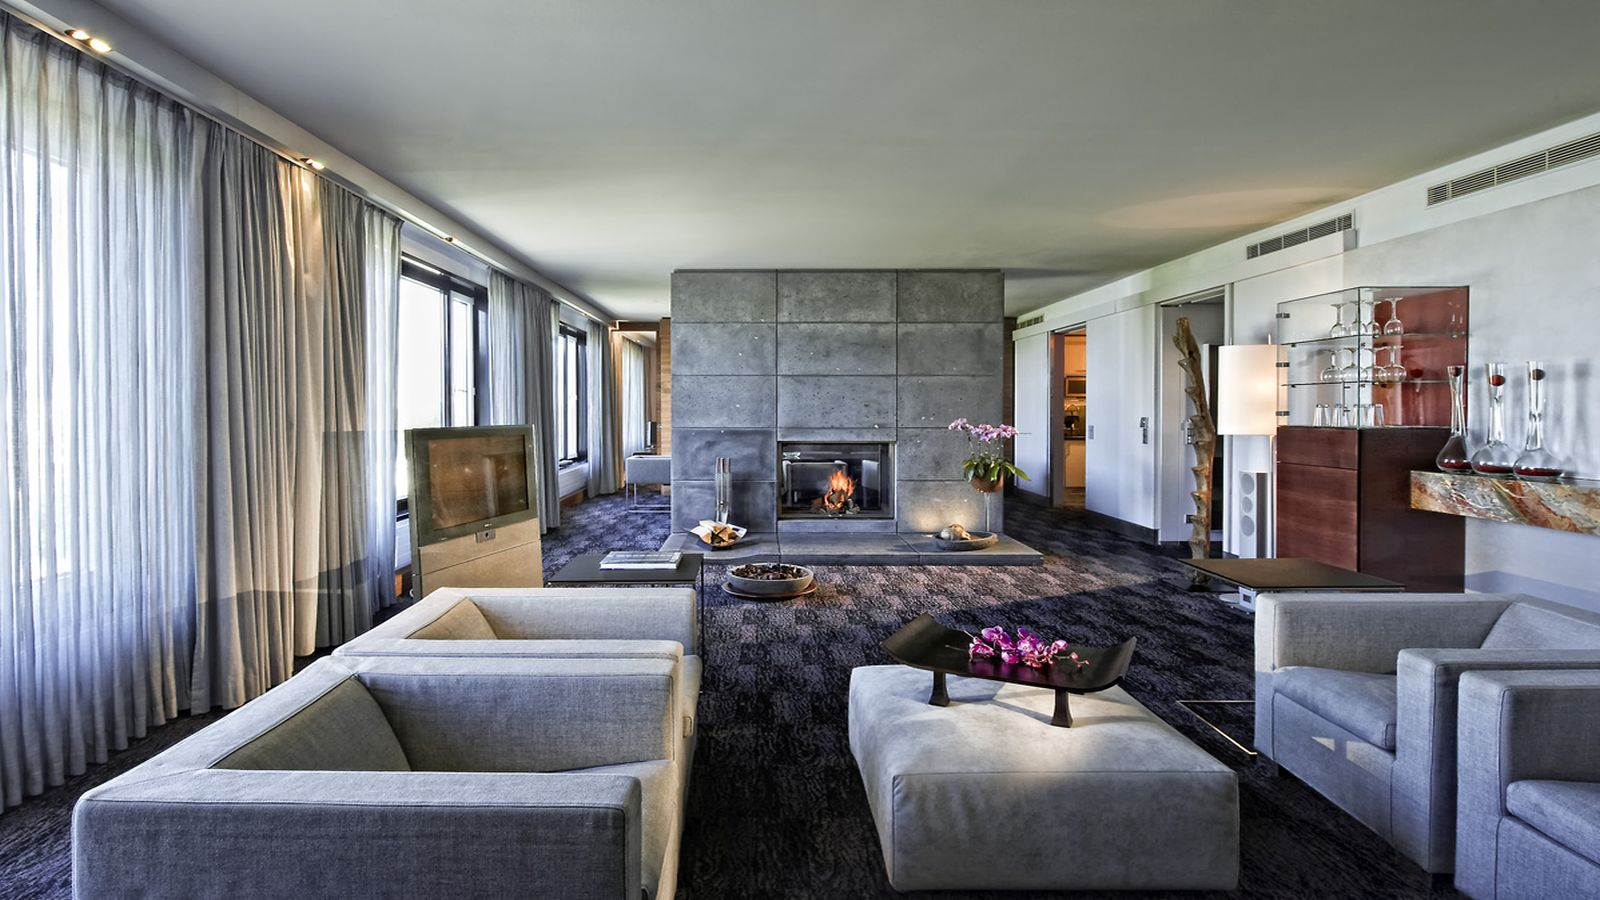 Living Room with Fireplace - Presidential Suite at Sheraton Berlin Grand Hotel Esplanade